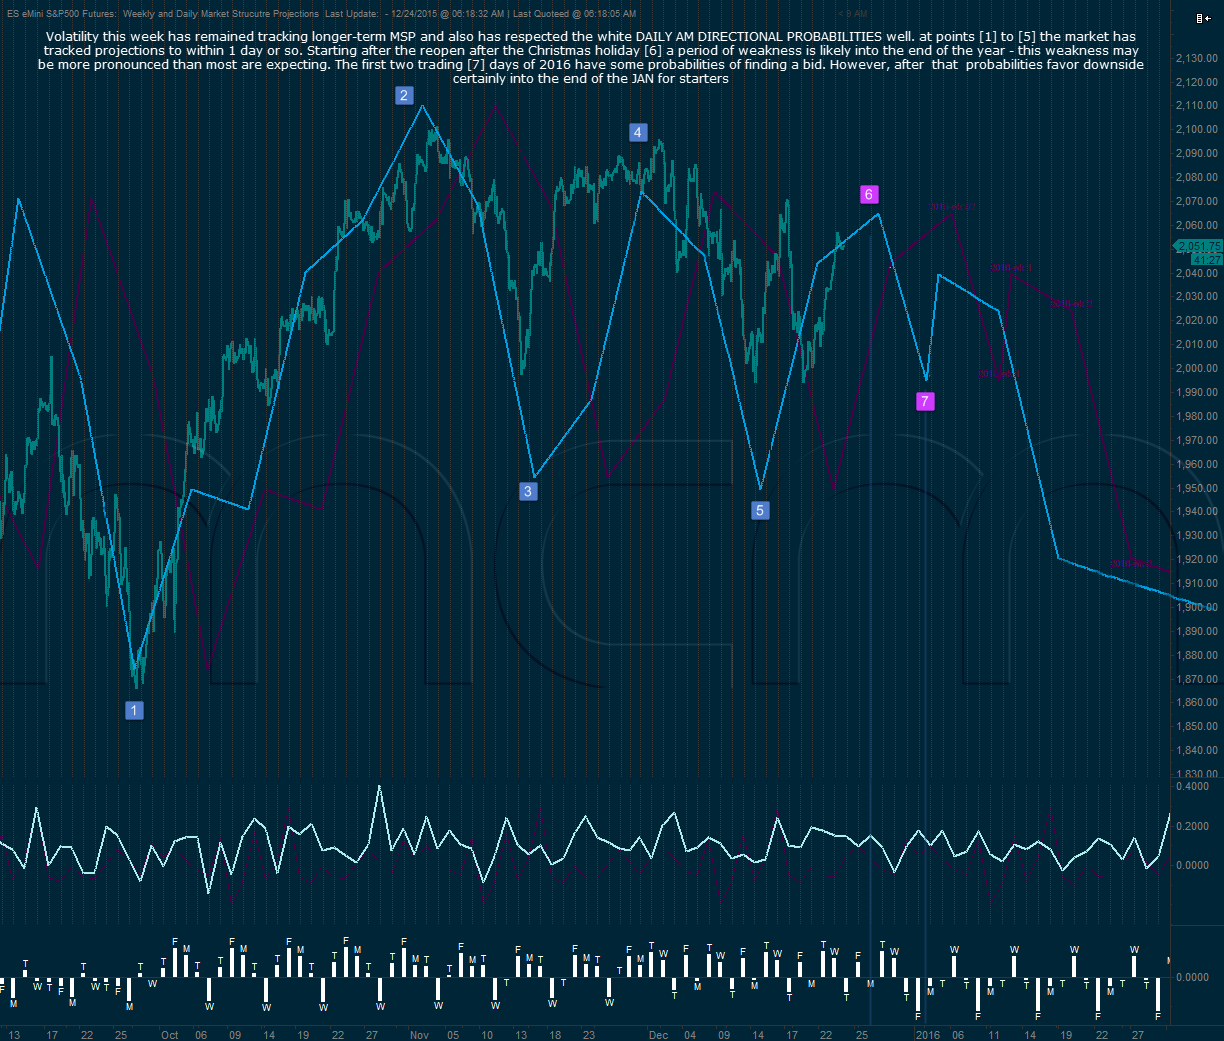 S&P500 Daily and Weekly Market Structure Projections